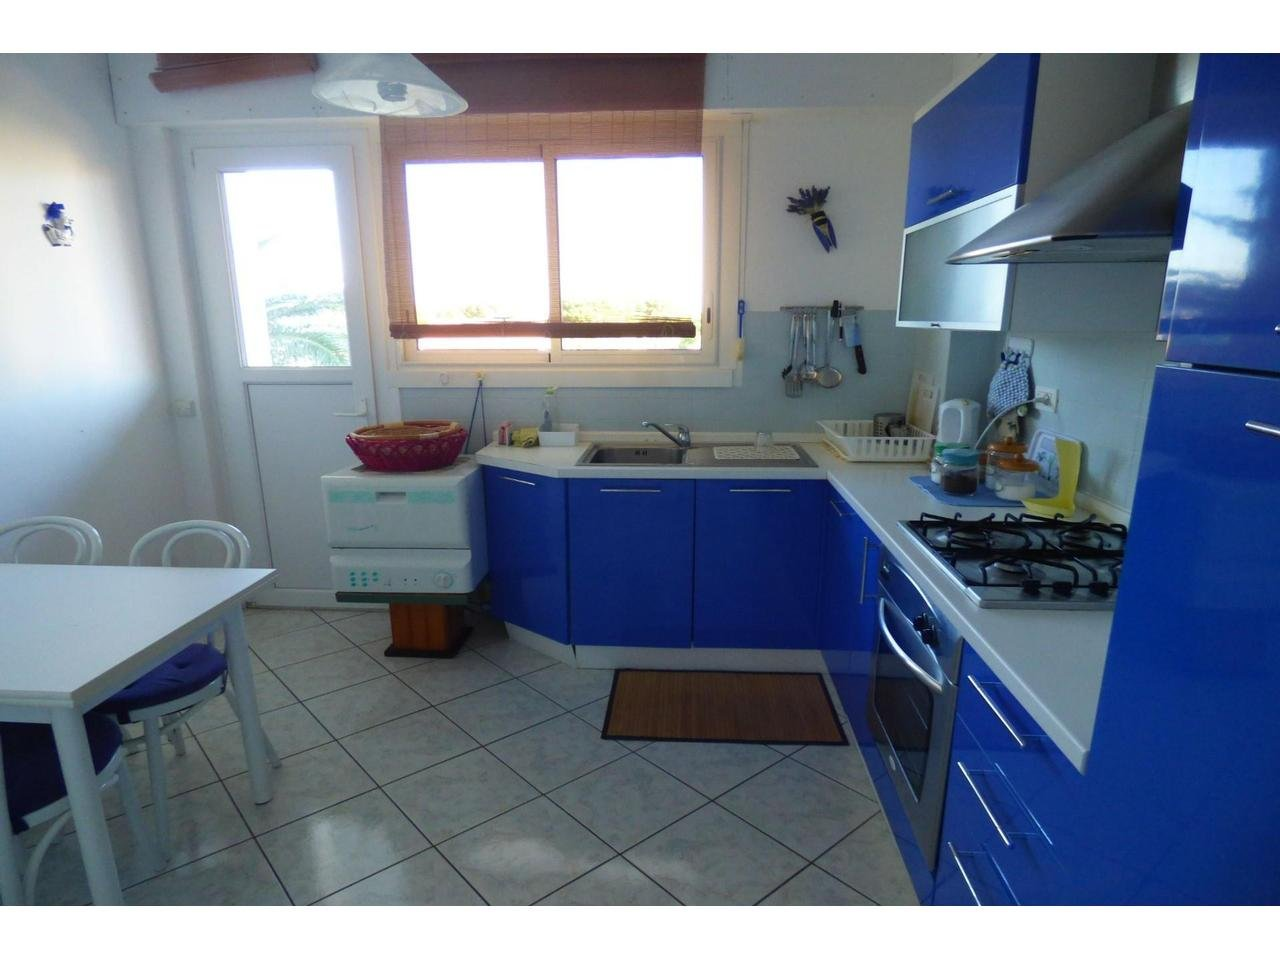 Appartement  3 Rooms 89m2  for sale   530000 €